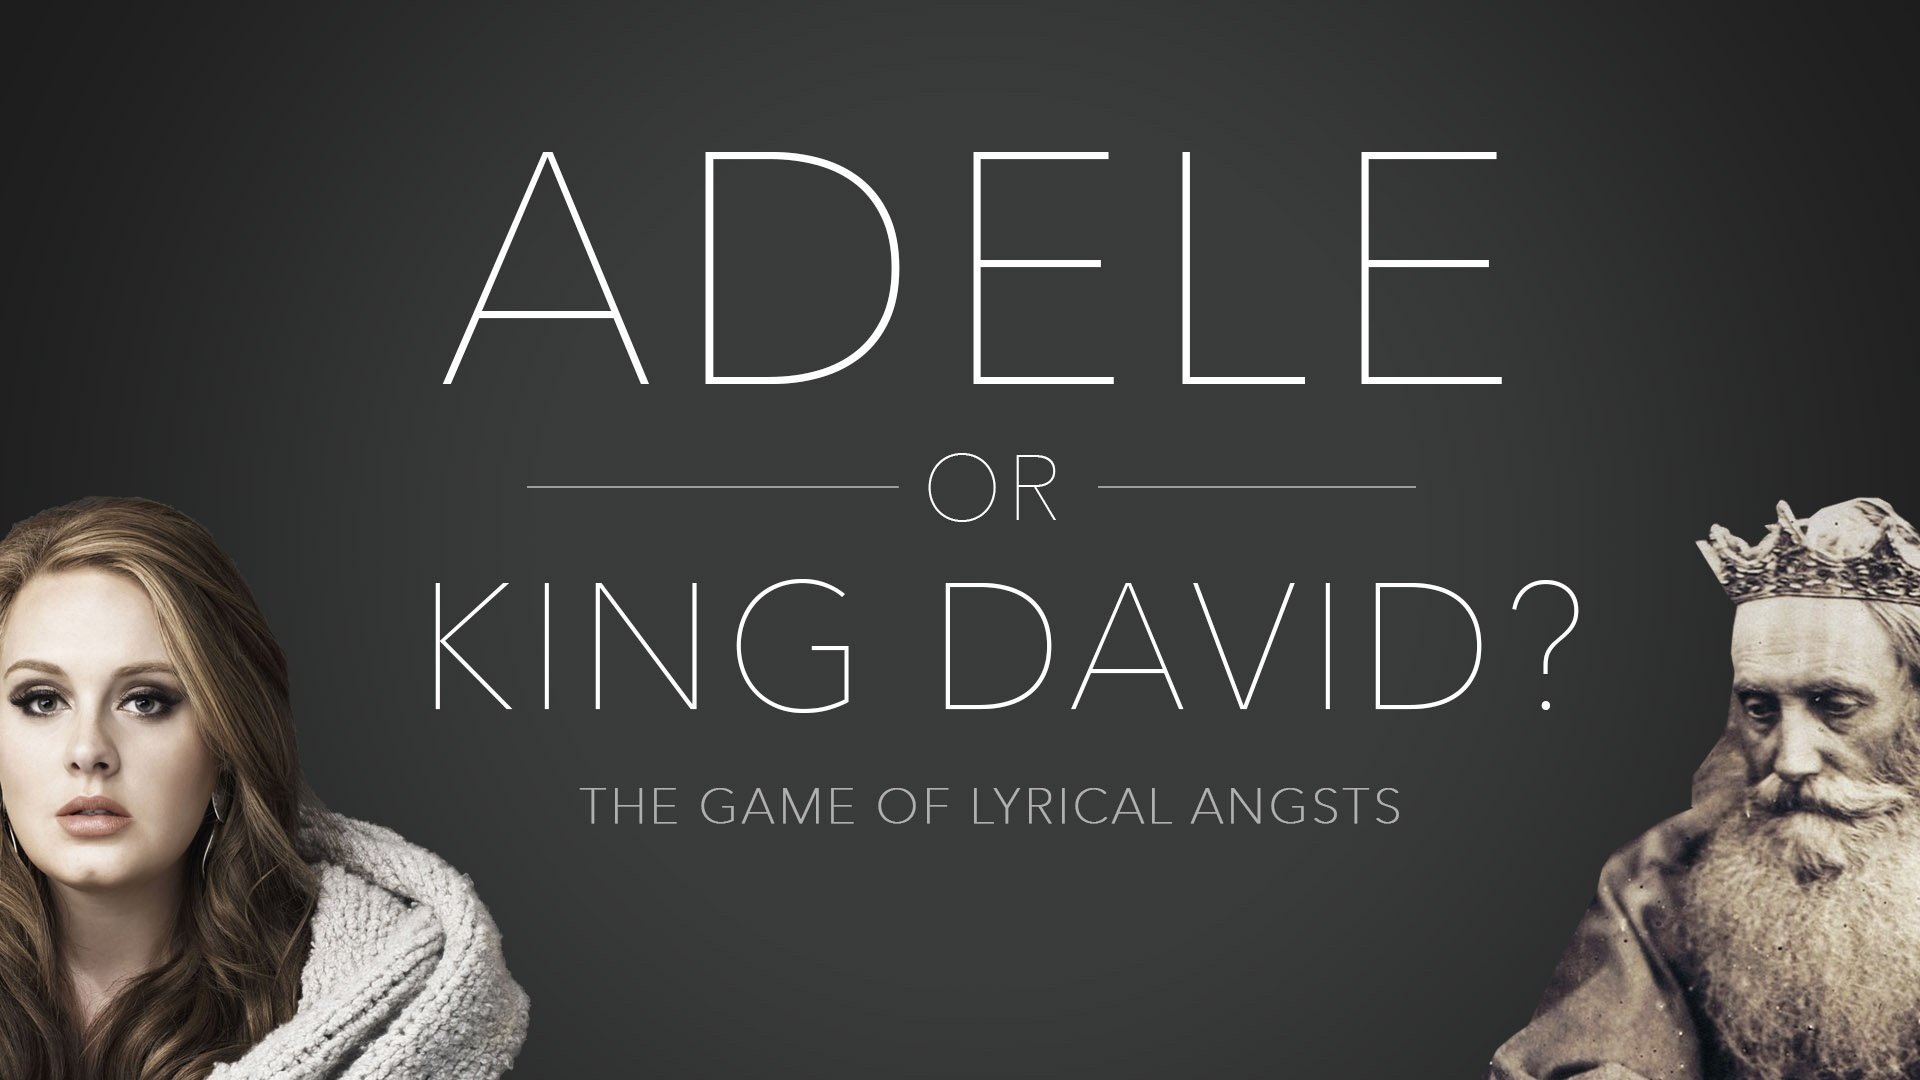 Adele_or_KingDavid_Title.jpg